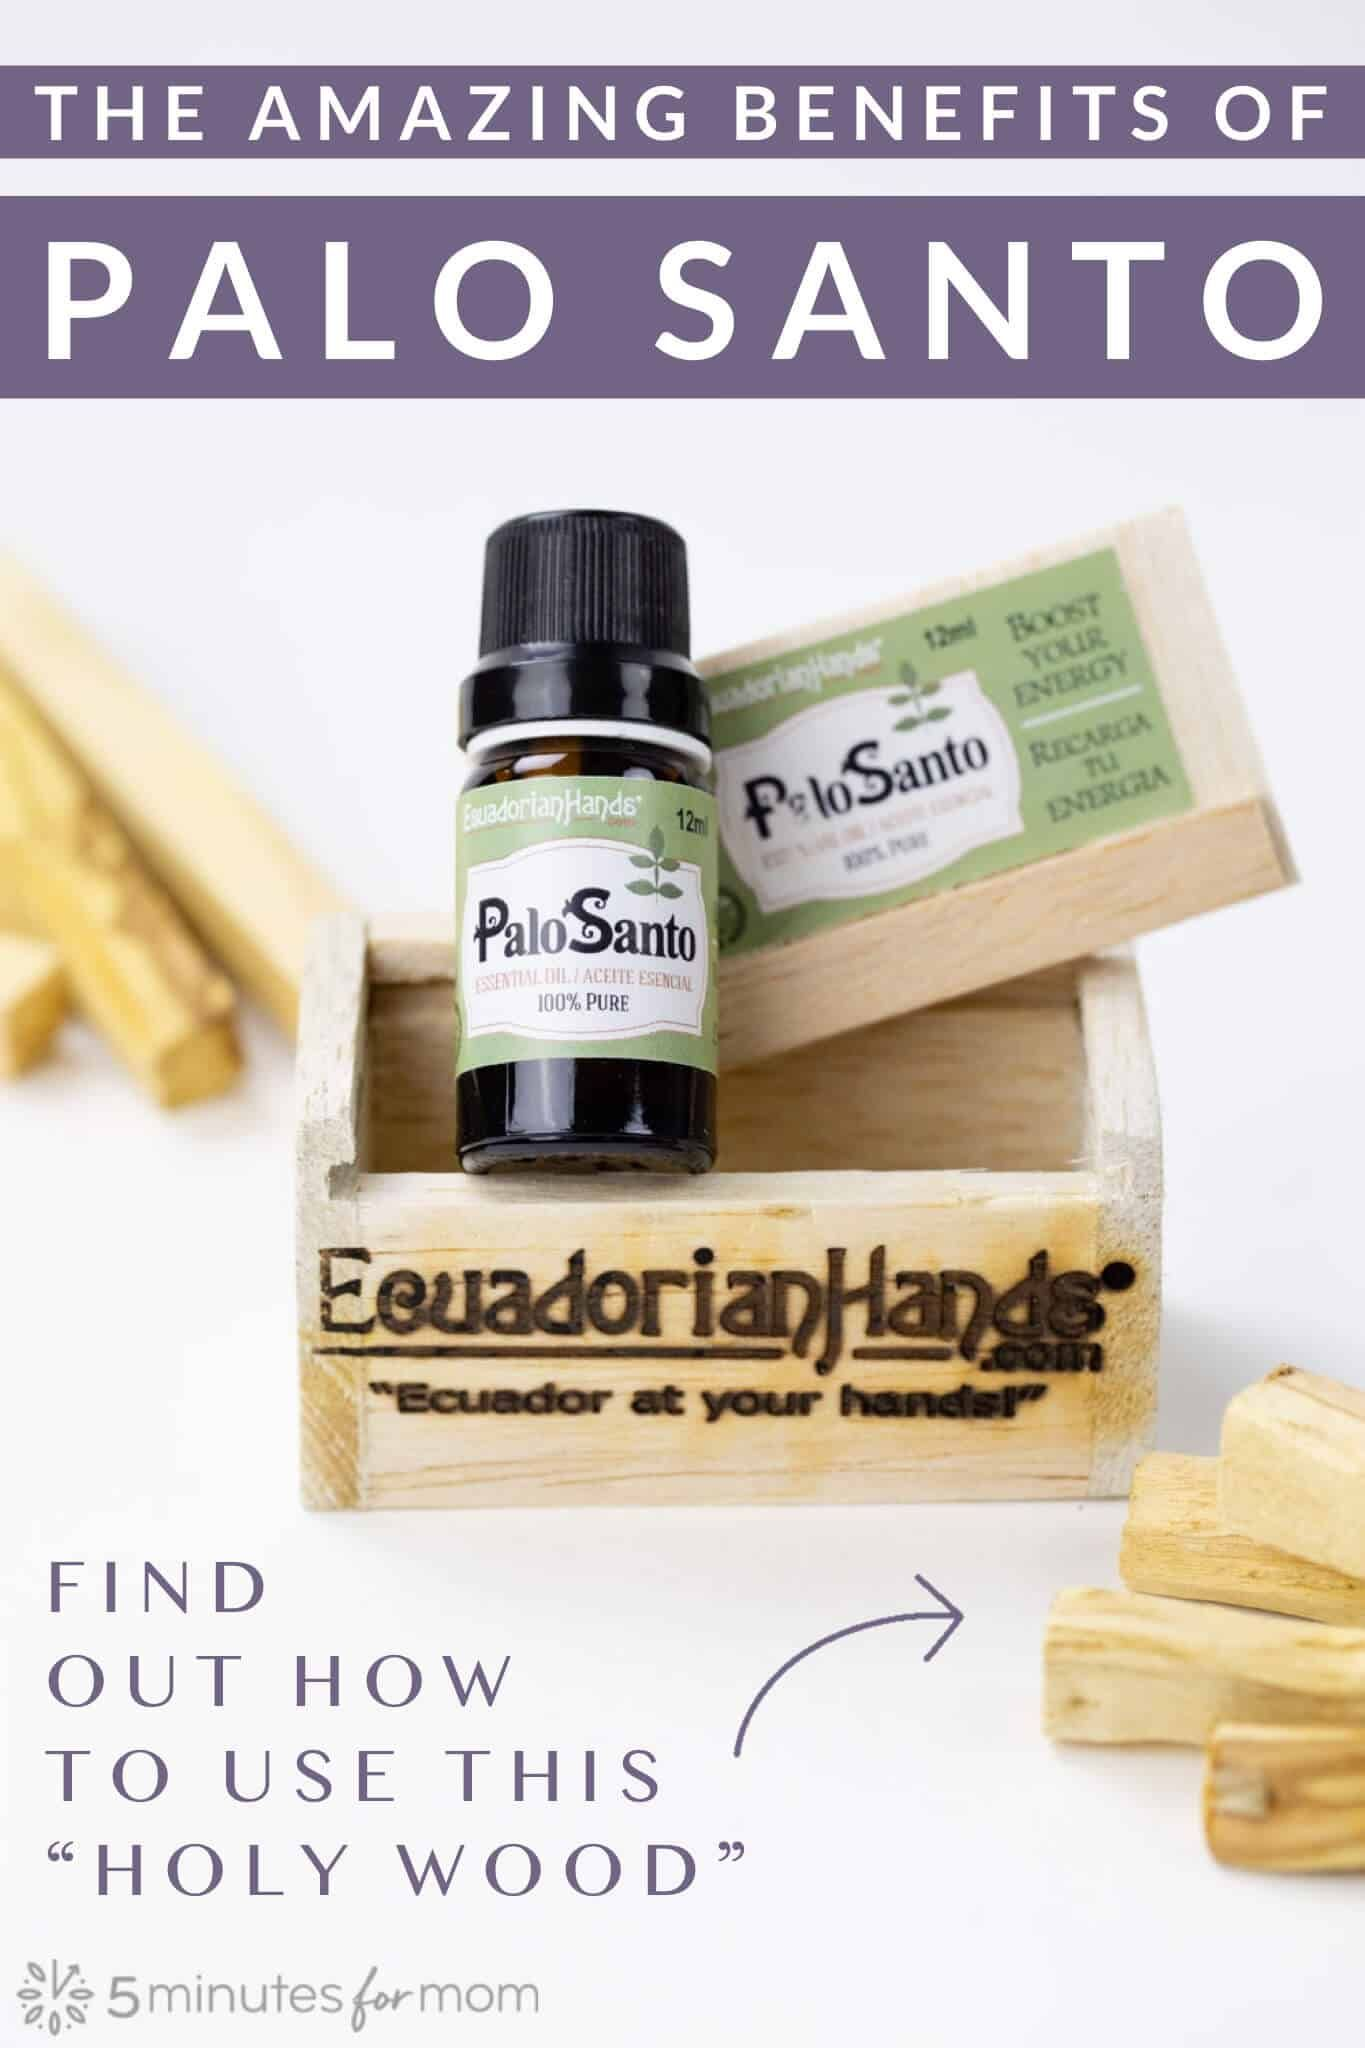 Palo santo benefits and how to use this holy wood